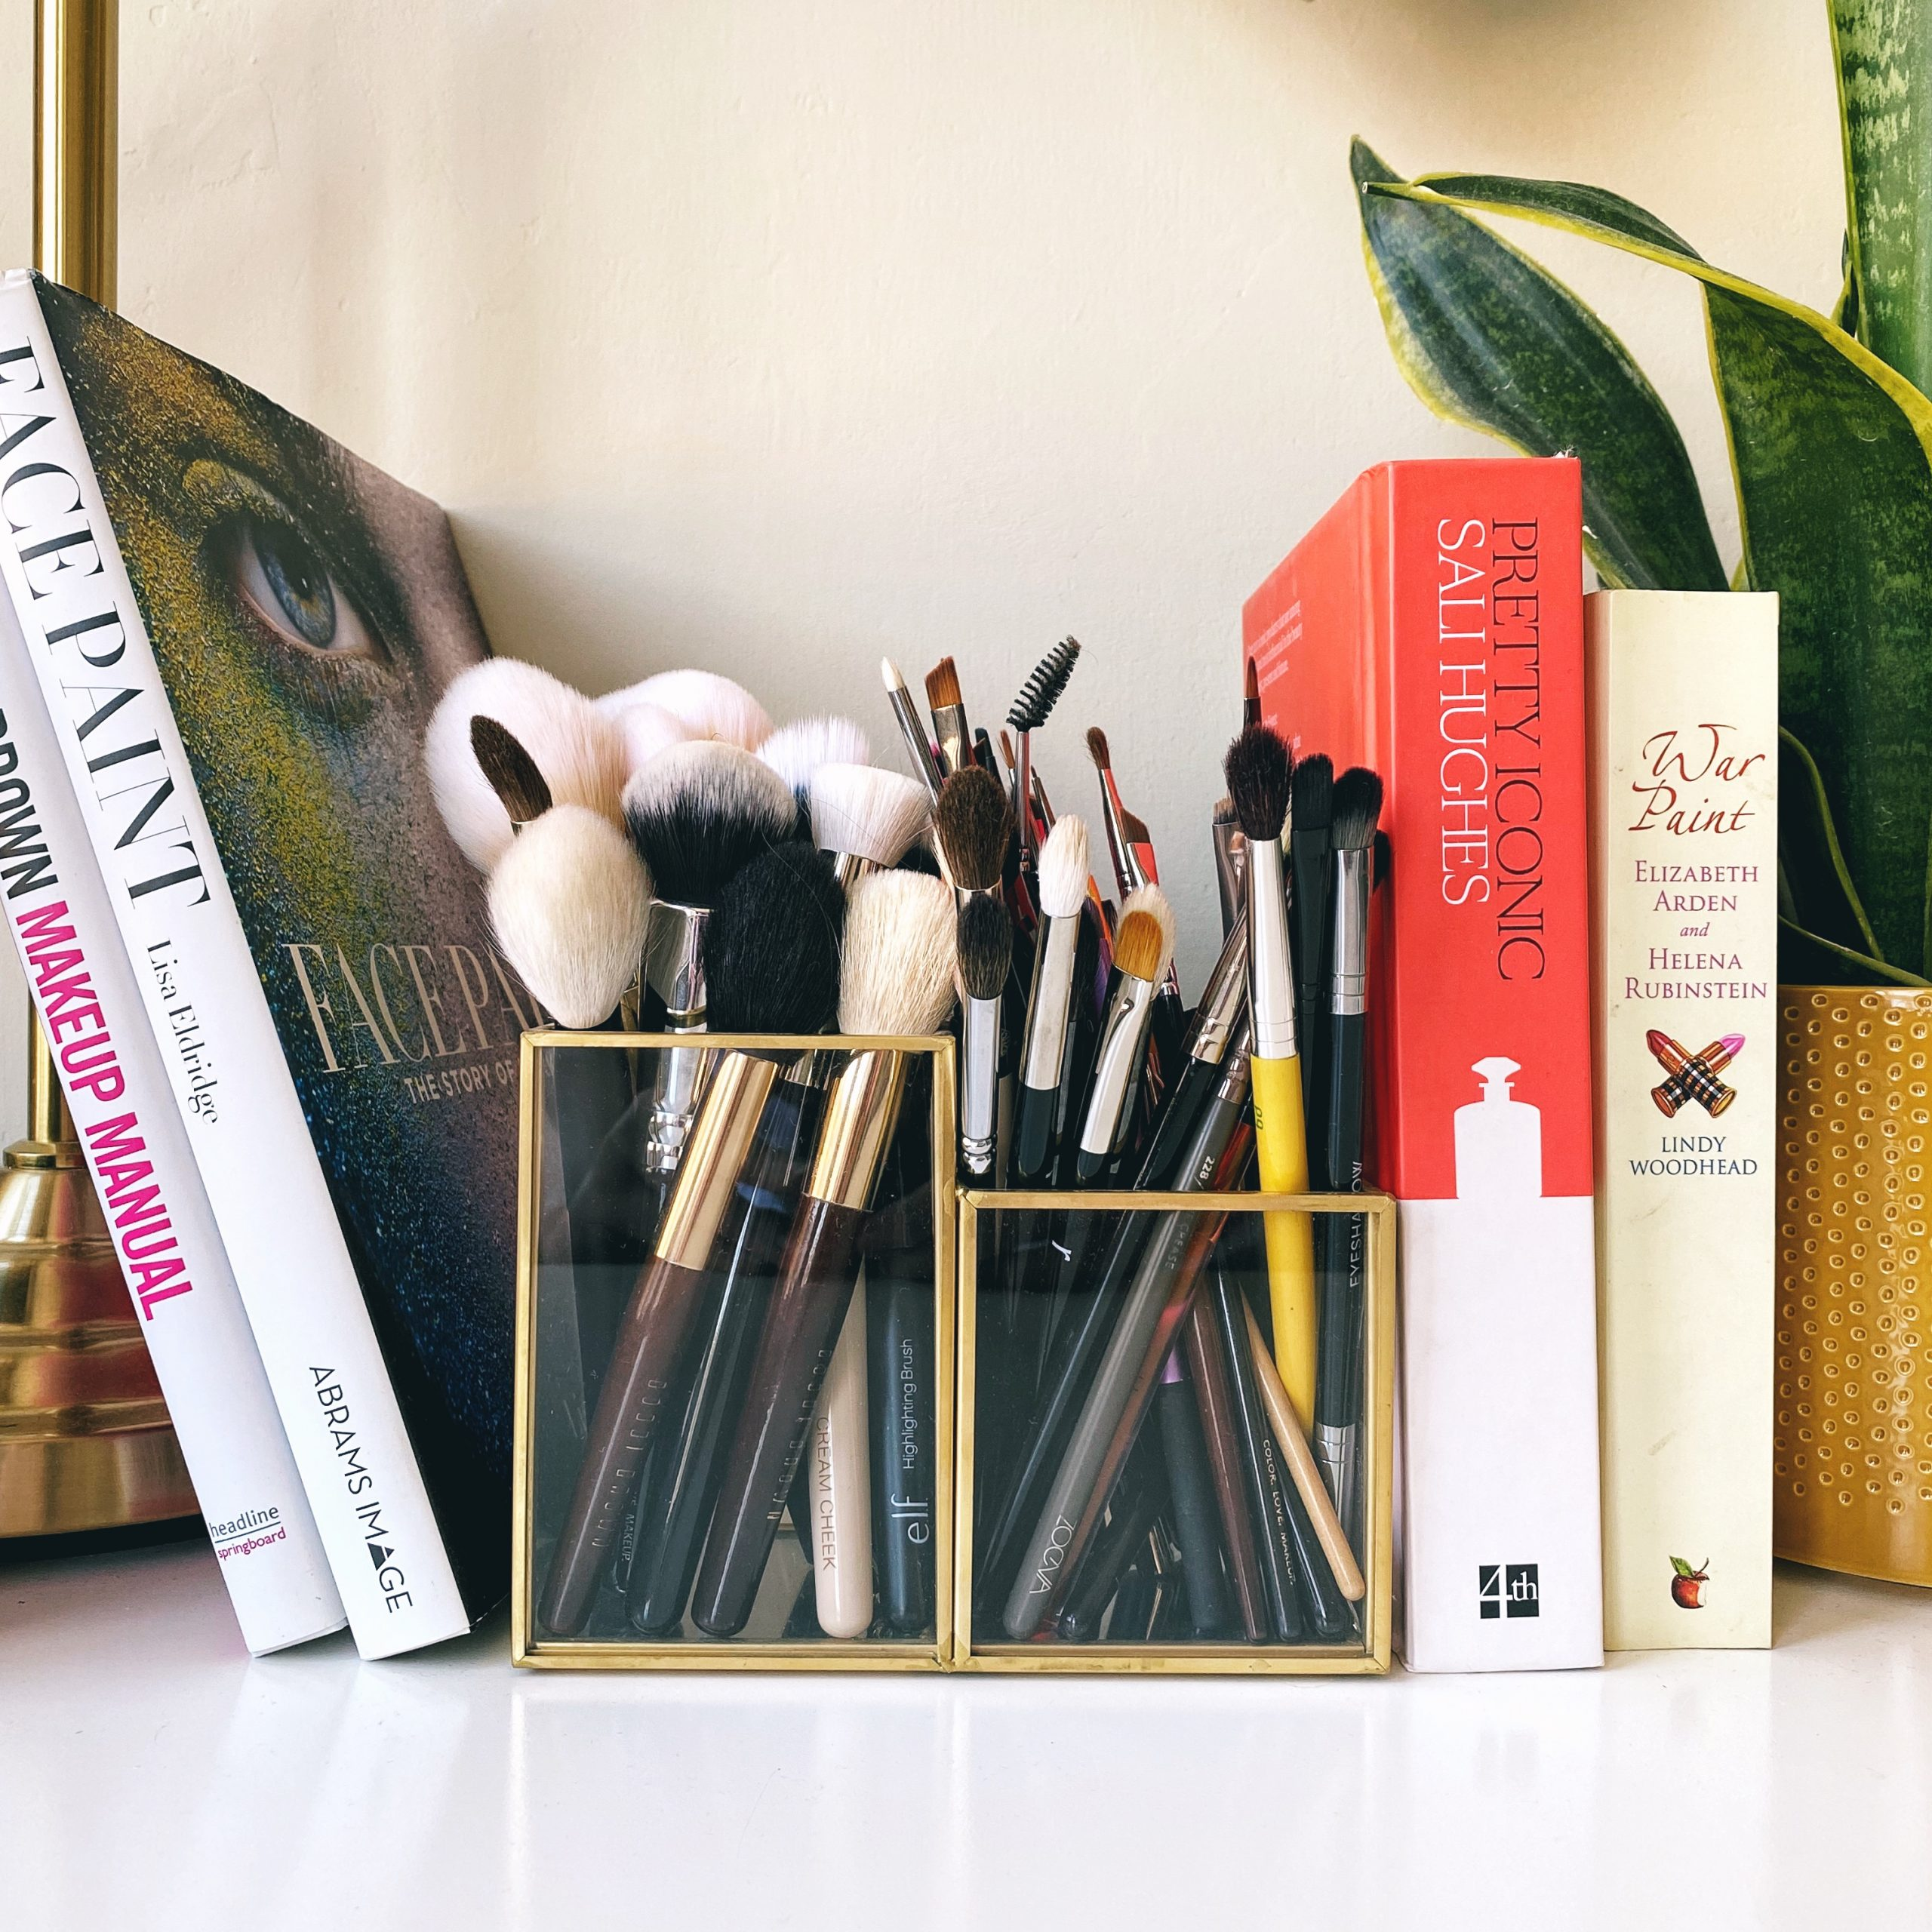 Makeup brush cleaning tips! A large tub of clean makeup brushes sit on a desk surrounded by makeup books and a plant.